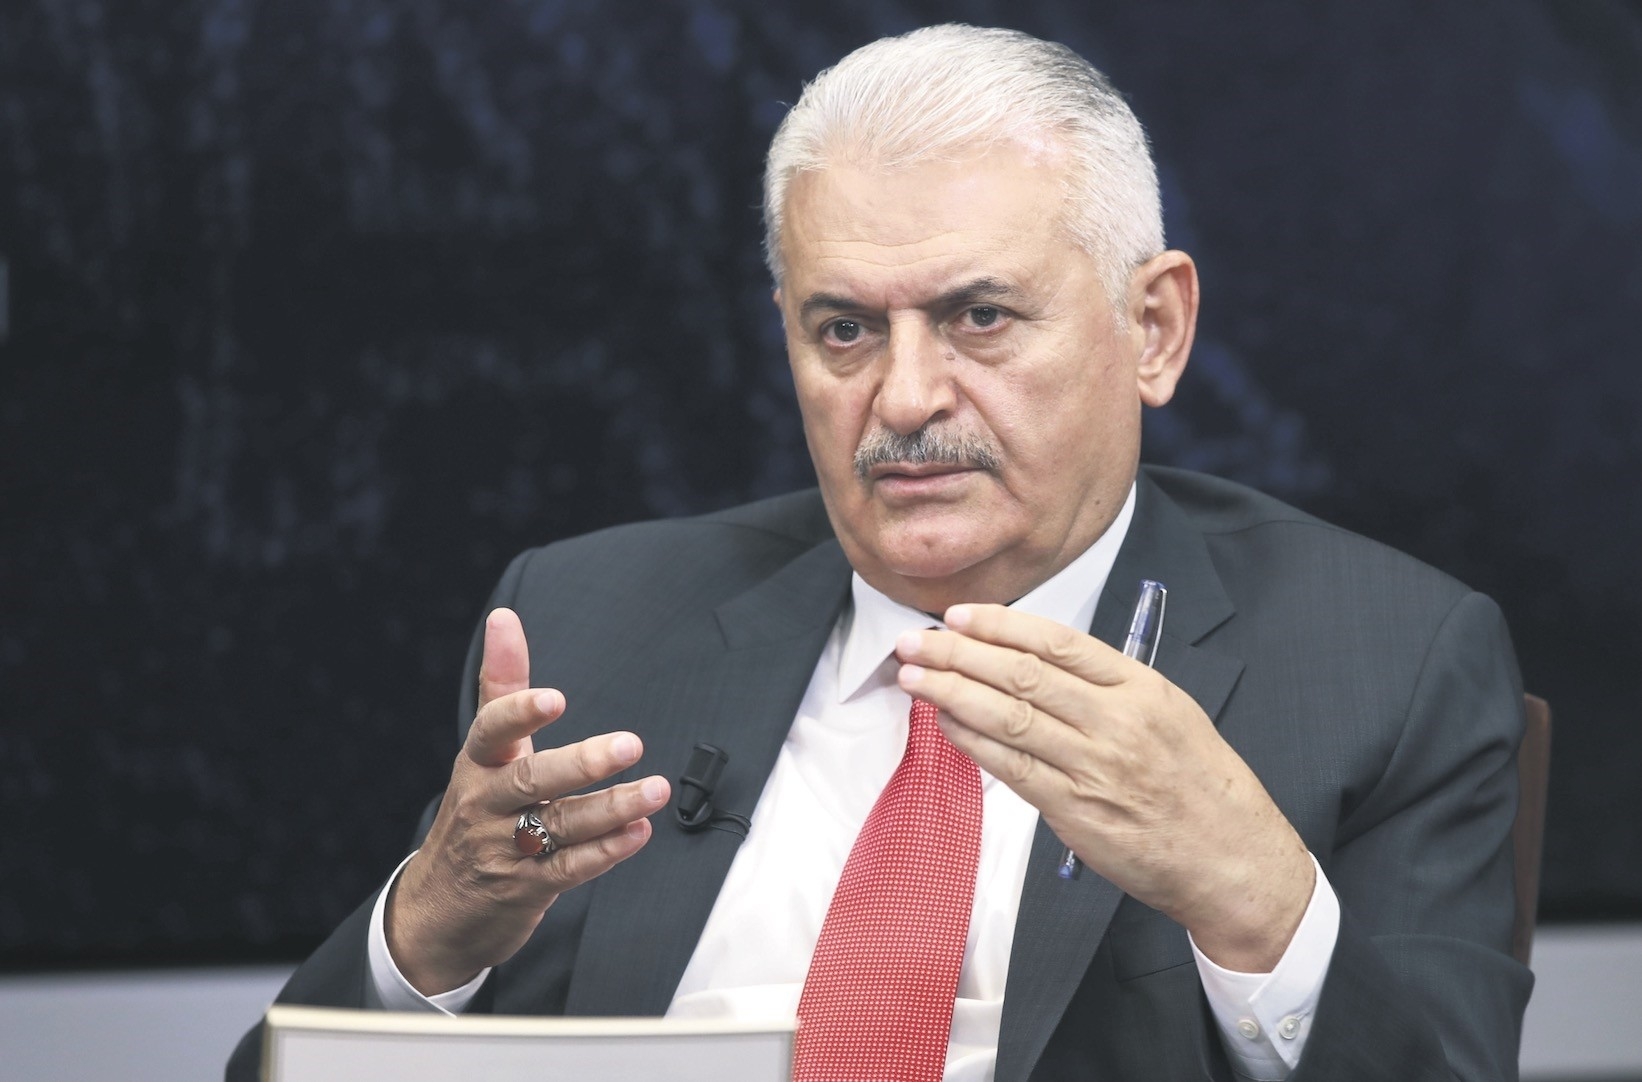 Speaking to Anadolu Agency, Yu0131ldu0131ru0131m said that the last decree before transitioning to the presidential system will include regulations necessary to avoid any counterterrorism vulnerability that might emerge with the end of the state of emergency.